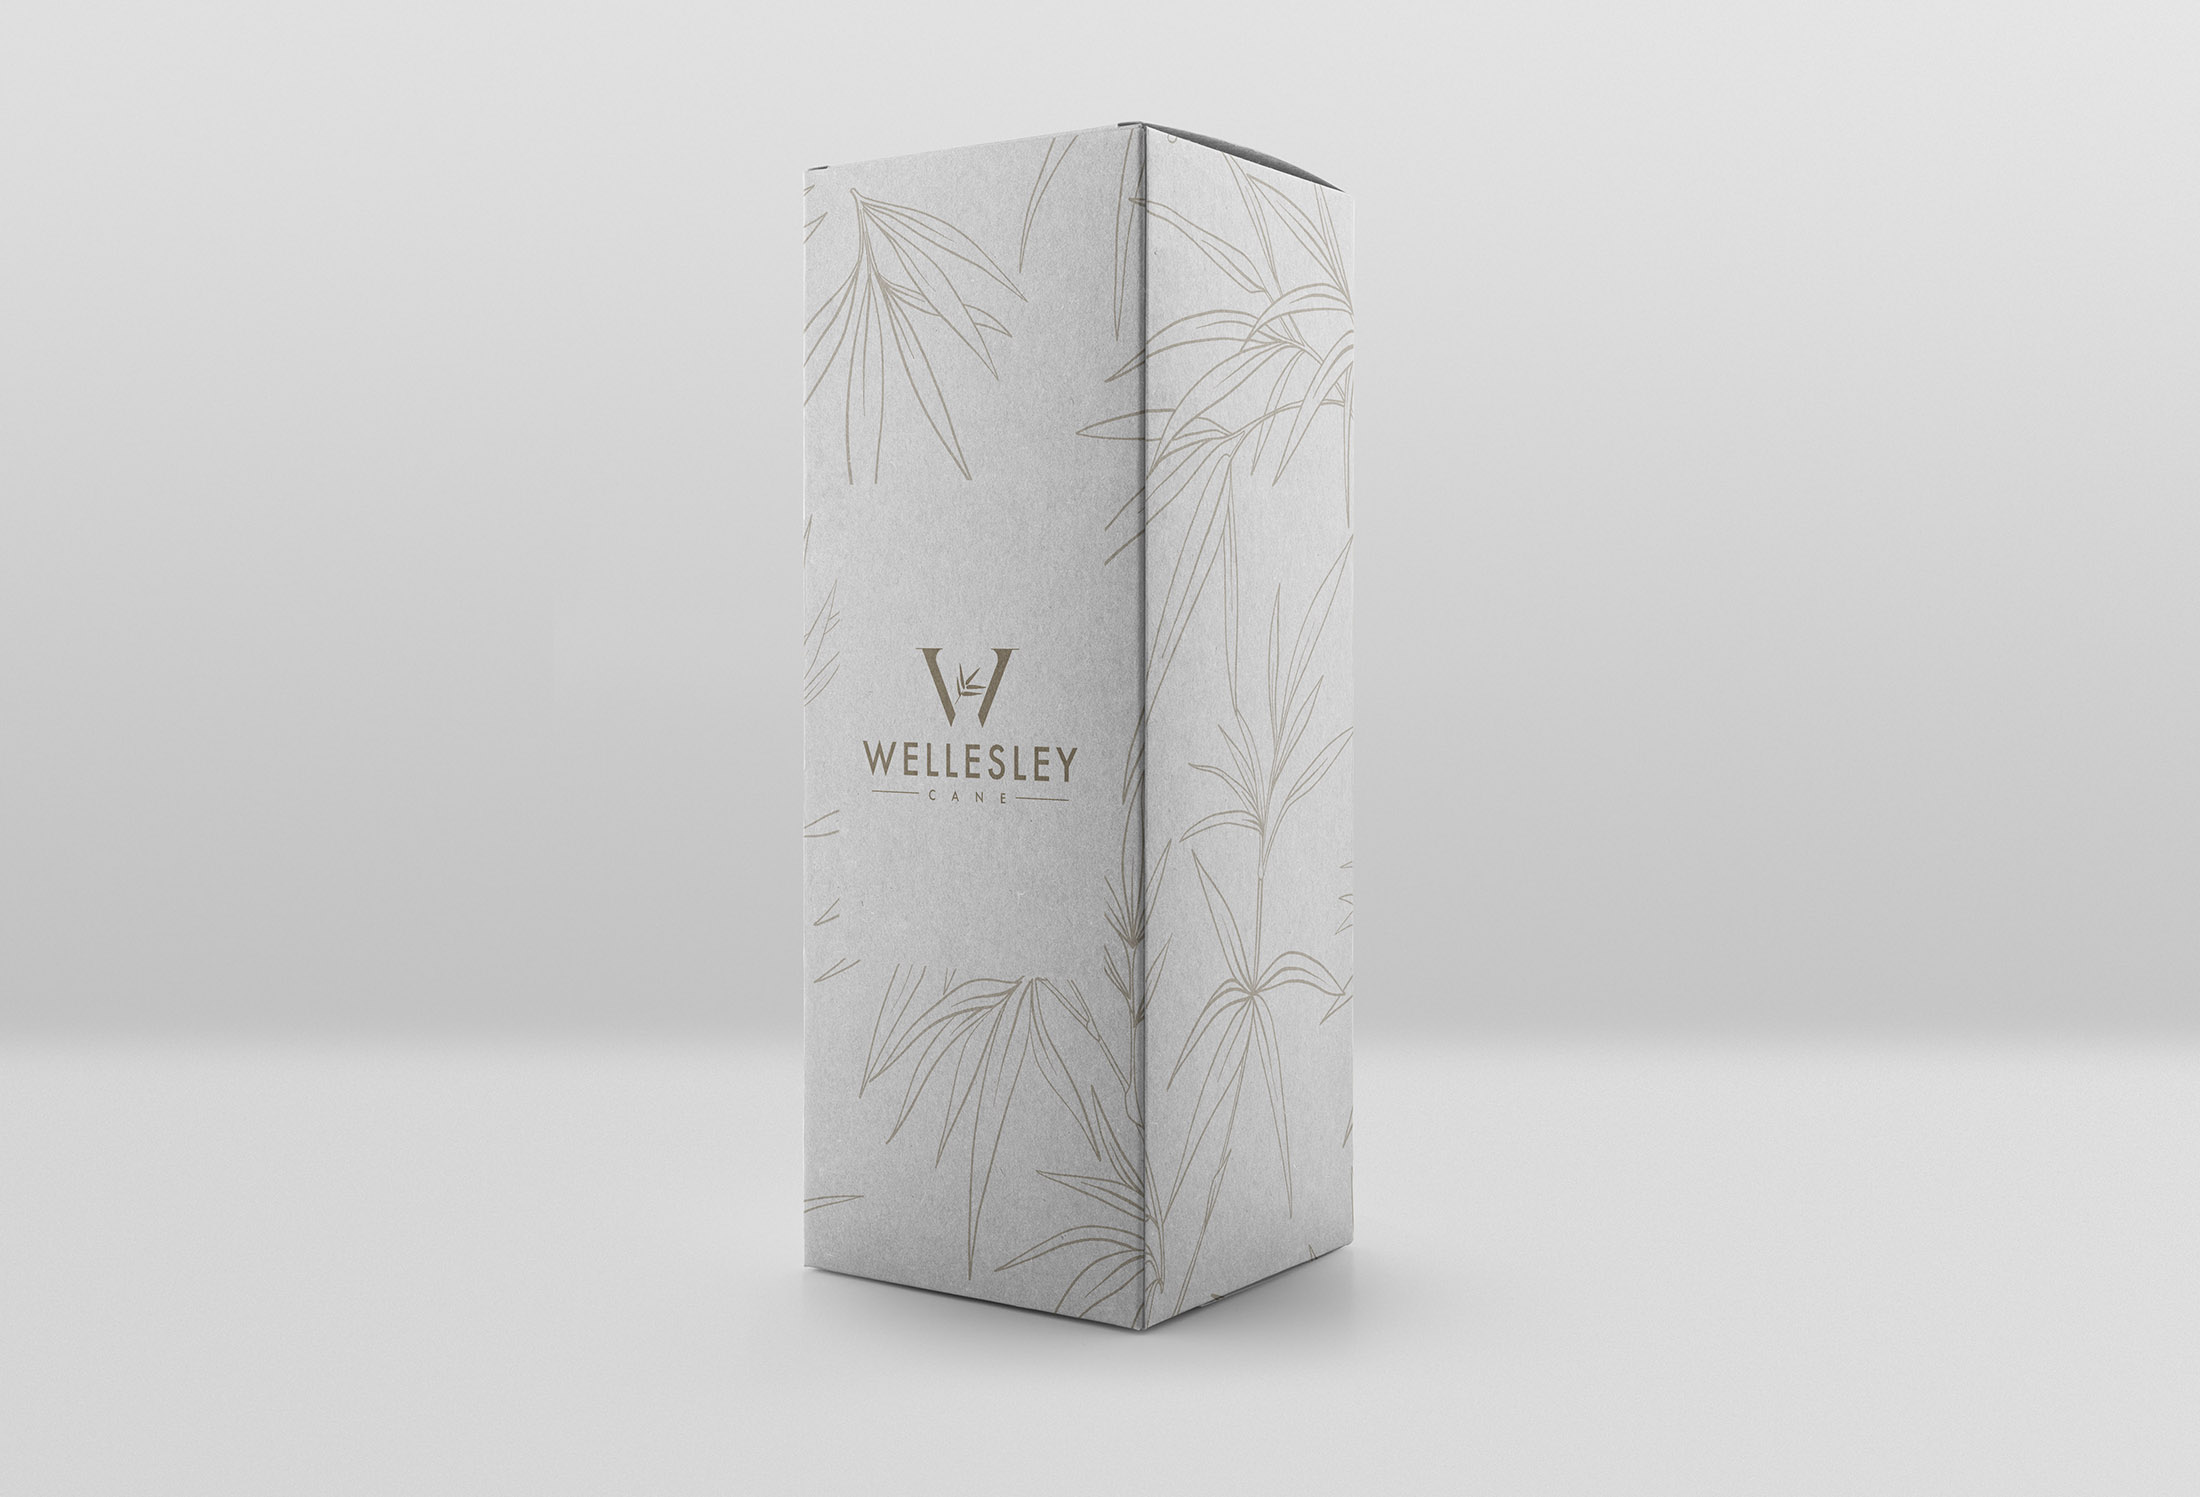 Wellesley Packaging Design Project